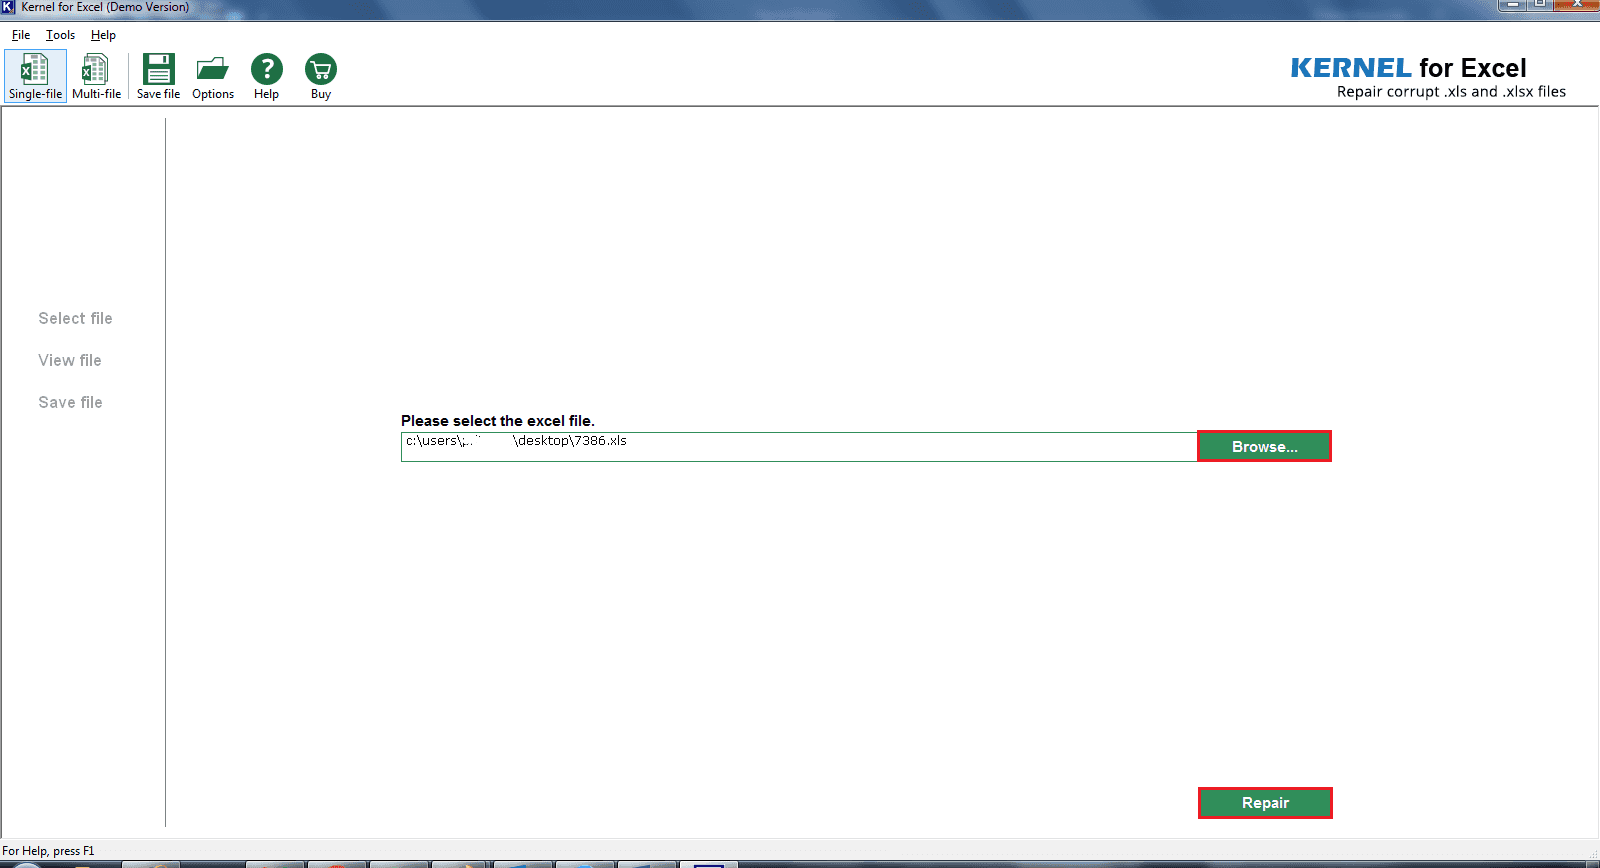 Browse to select Excel file to recover